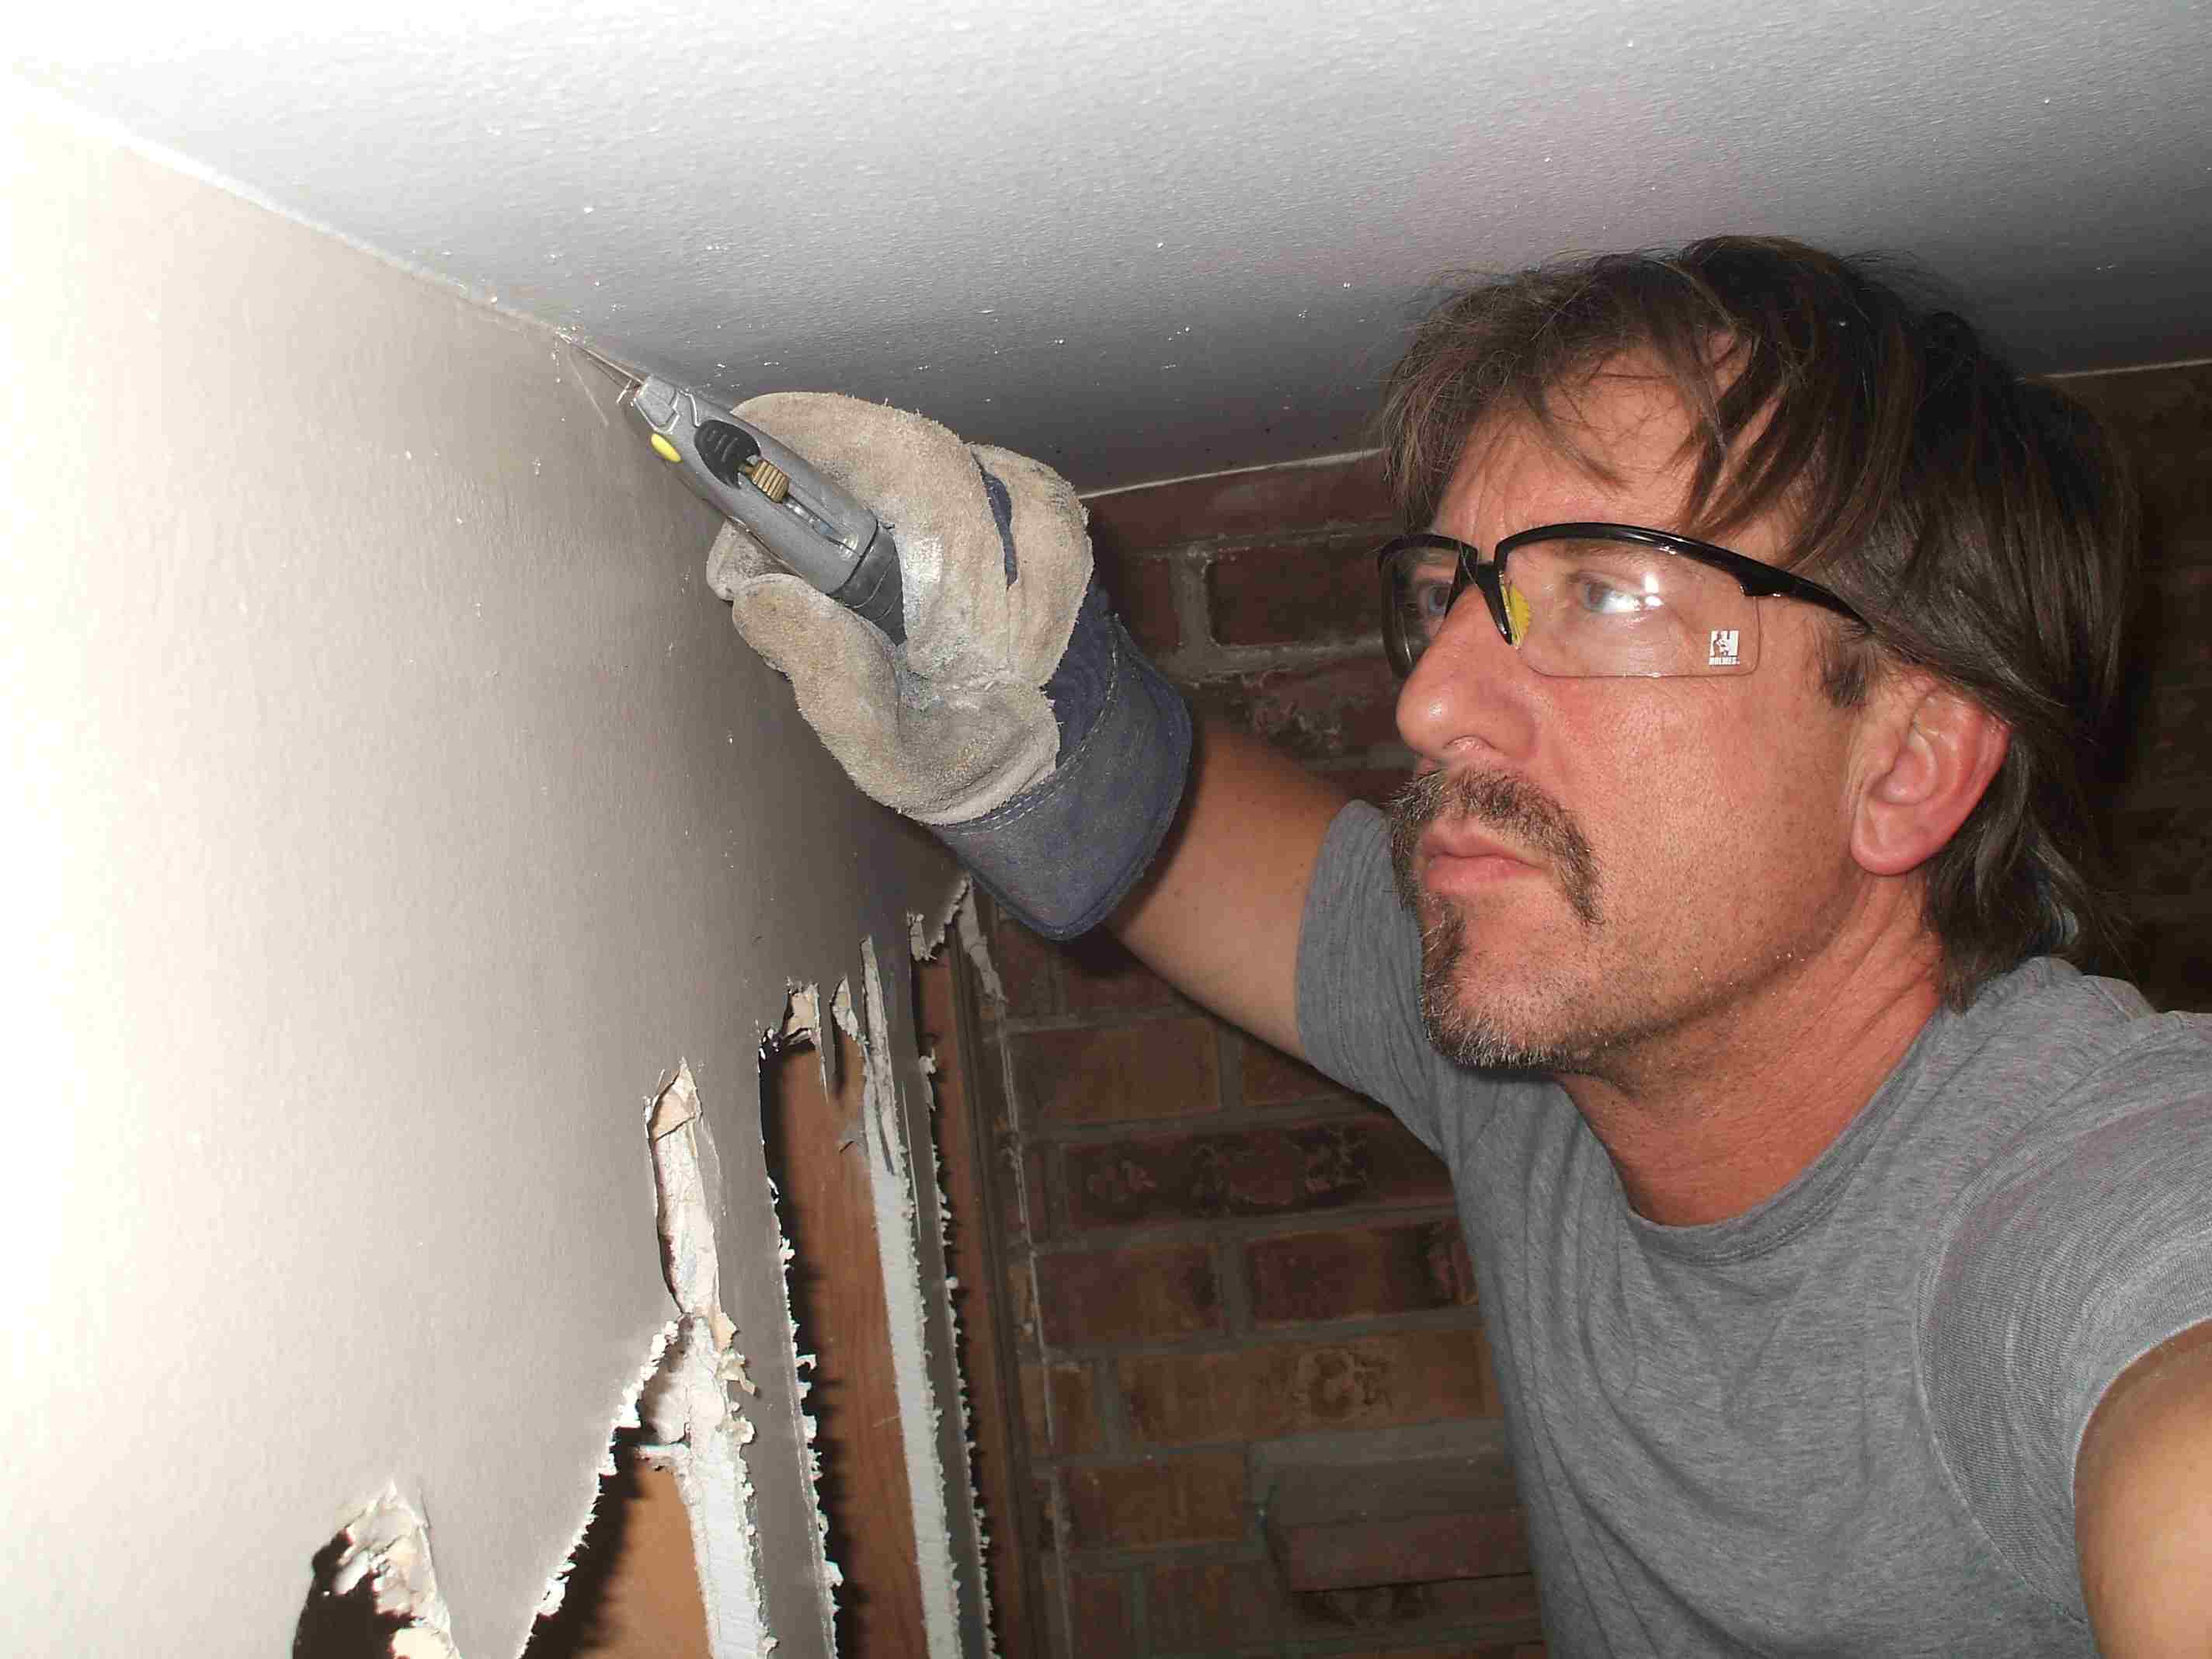 Cutting the paint and caulk off an interior wall